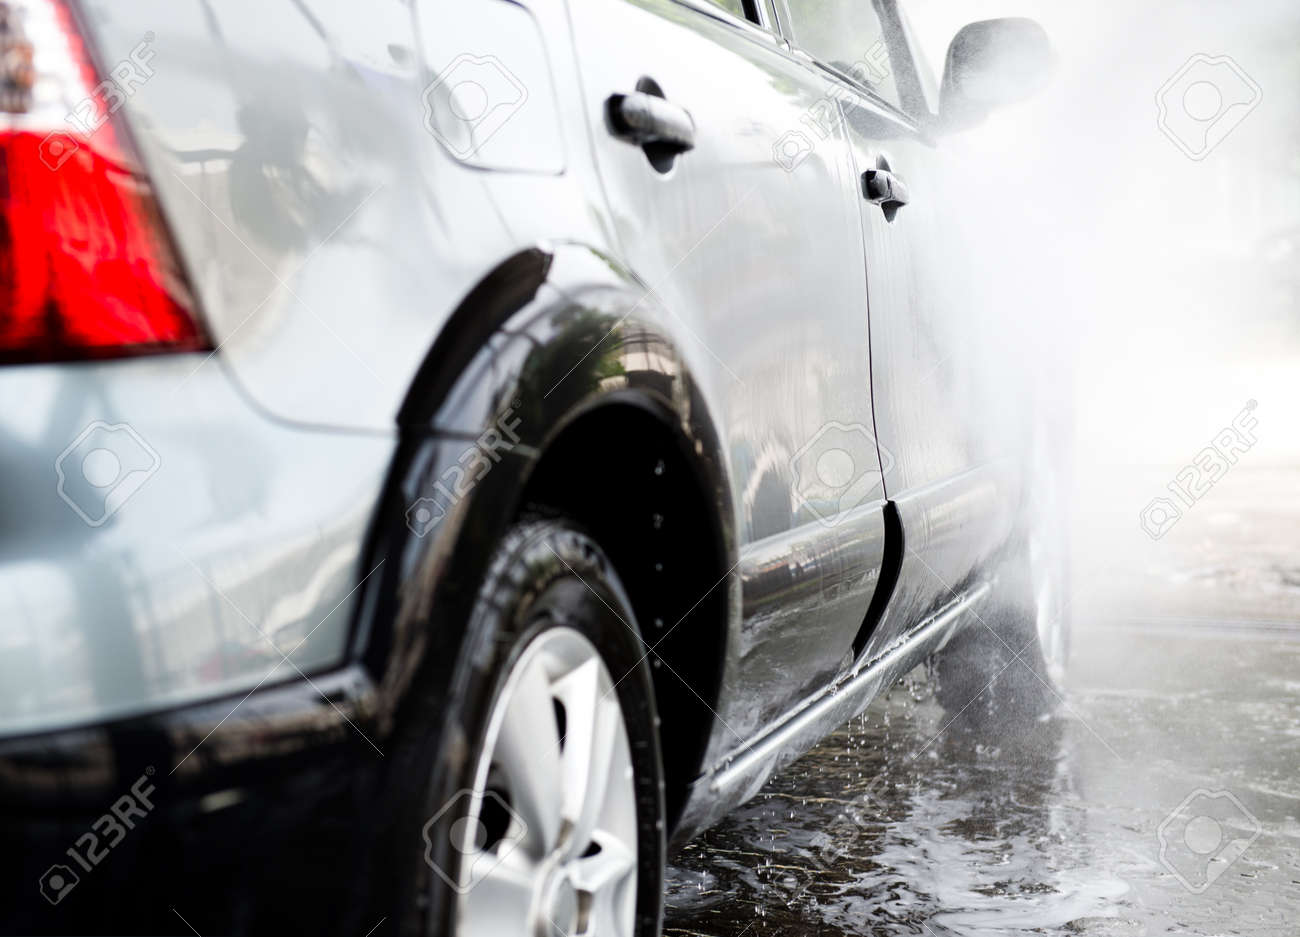 Car wash with flowing water and foam. Stock Photo - 33707662